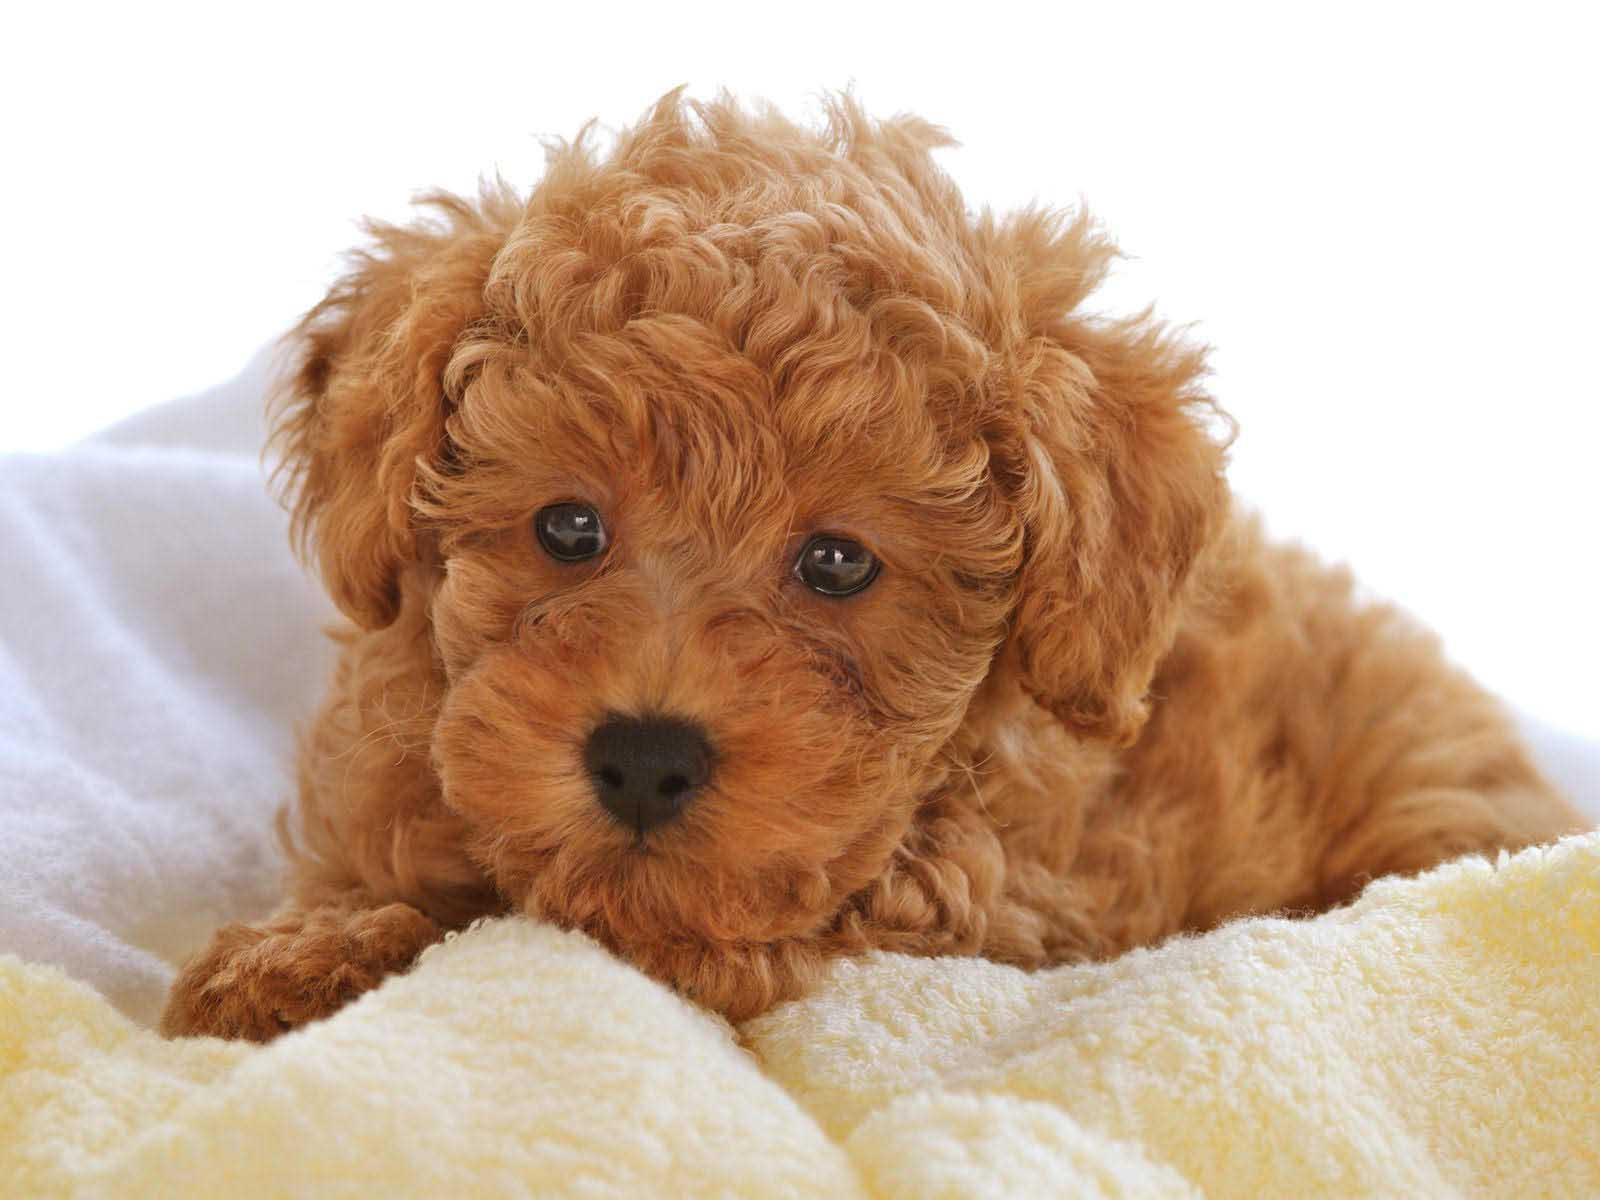 Poodle cute wallpapers